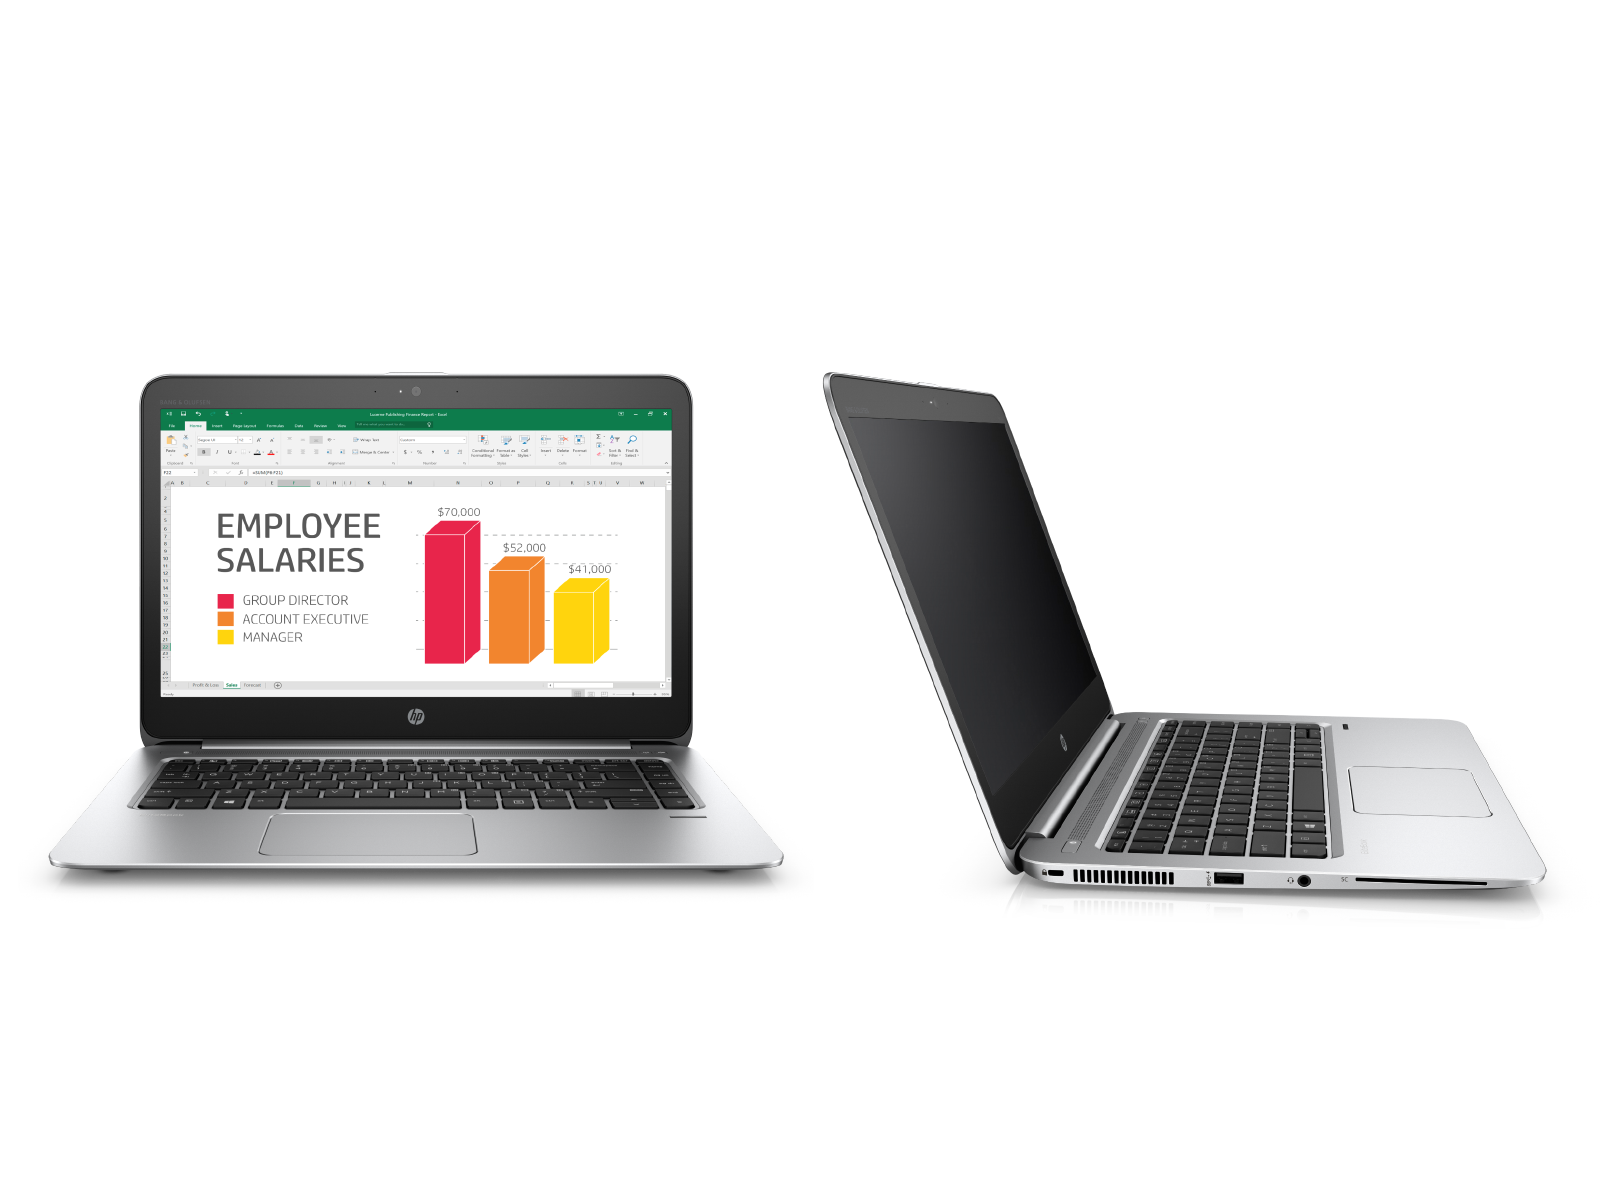 Hp Eingebauter Sichtschutz In Business Laptops Notebookcheck Com News